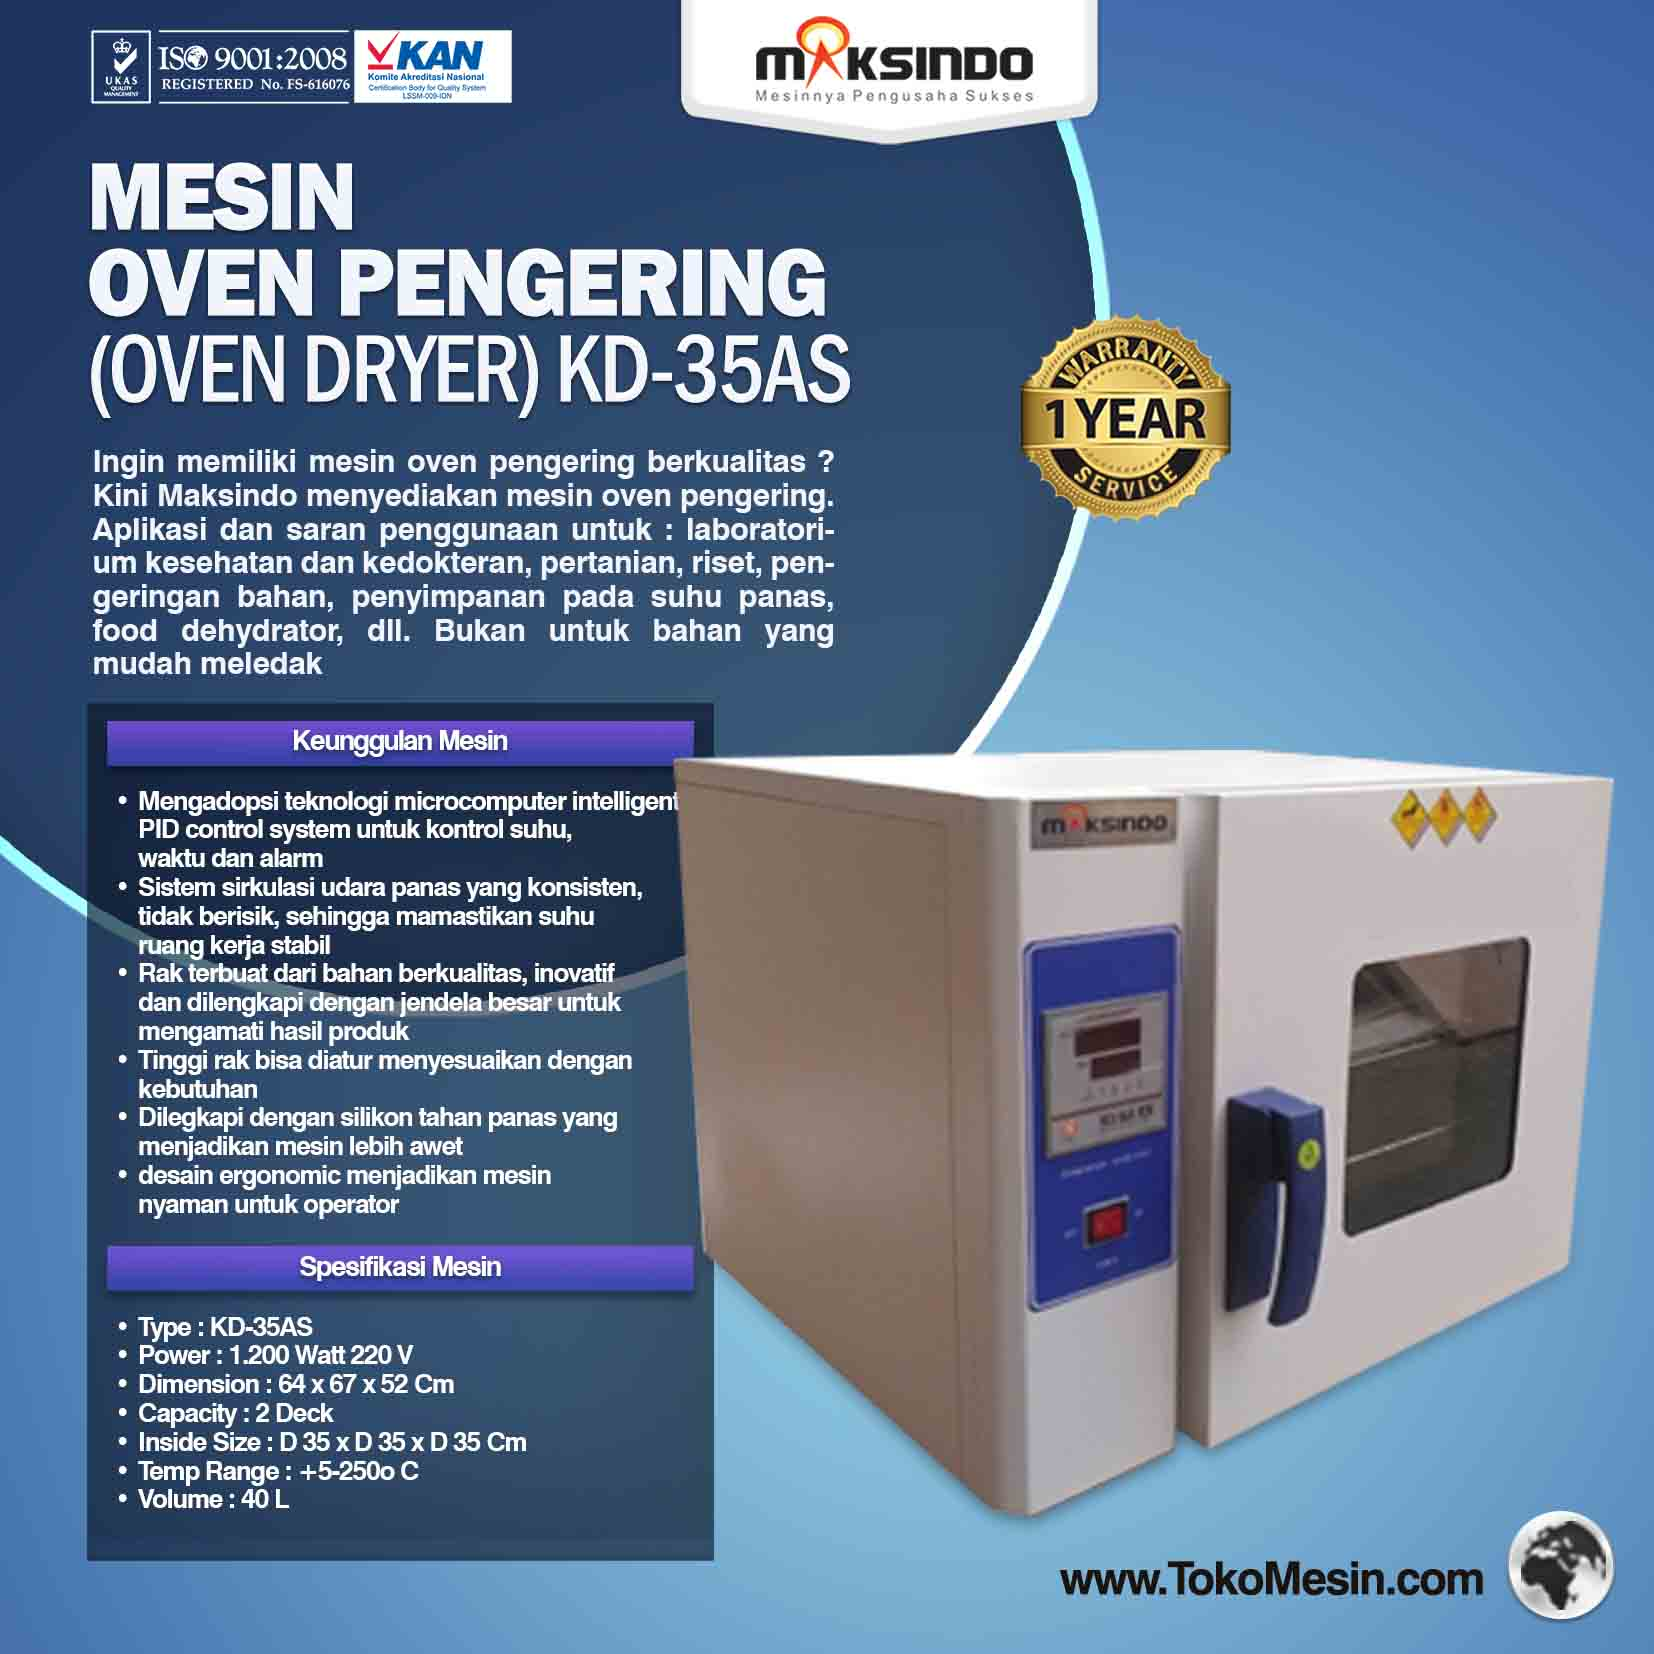 Mesin Oven Pengering (Oven Dryer) KD-35AS